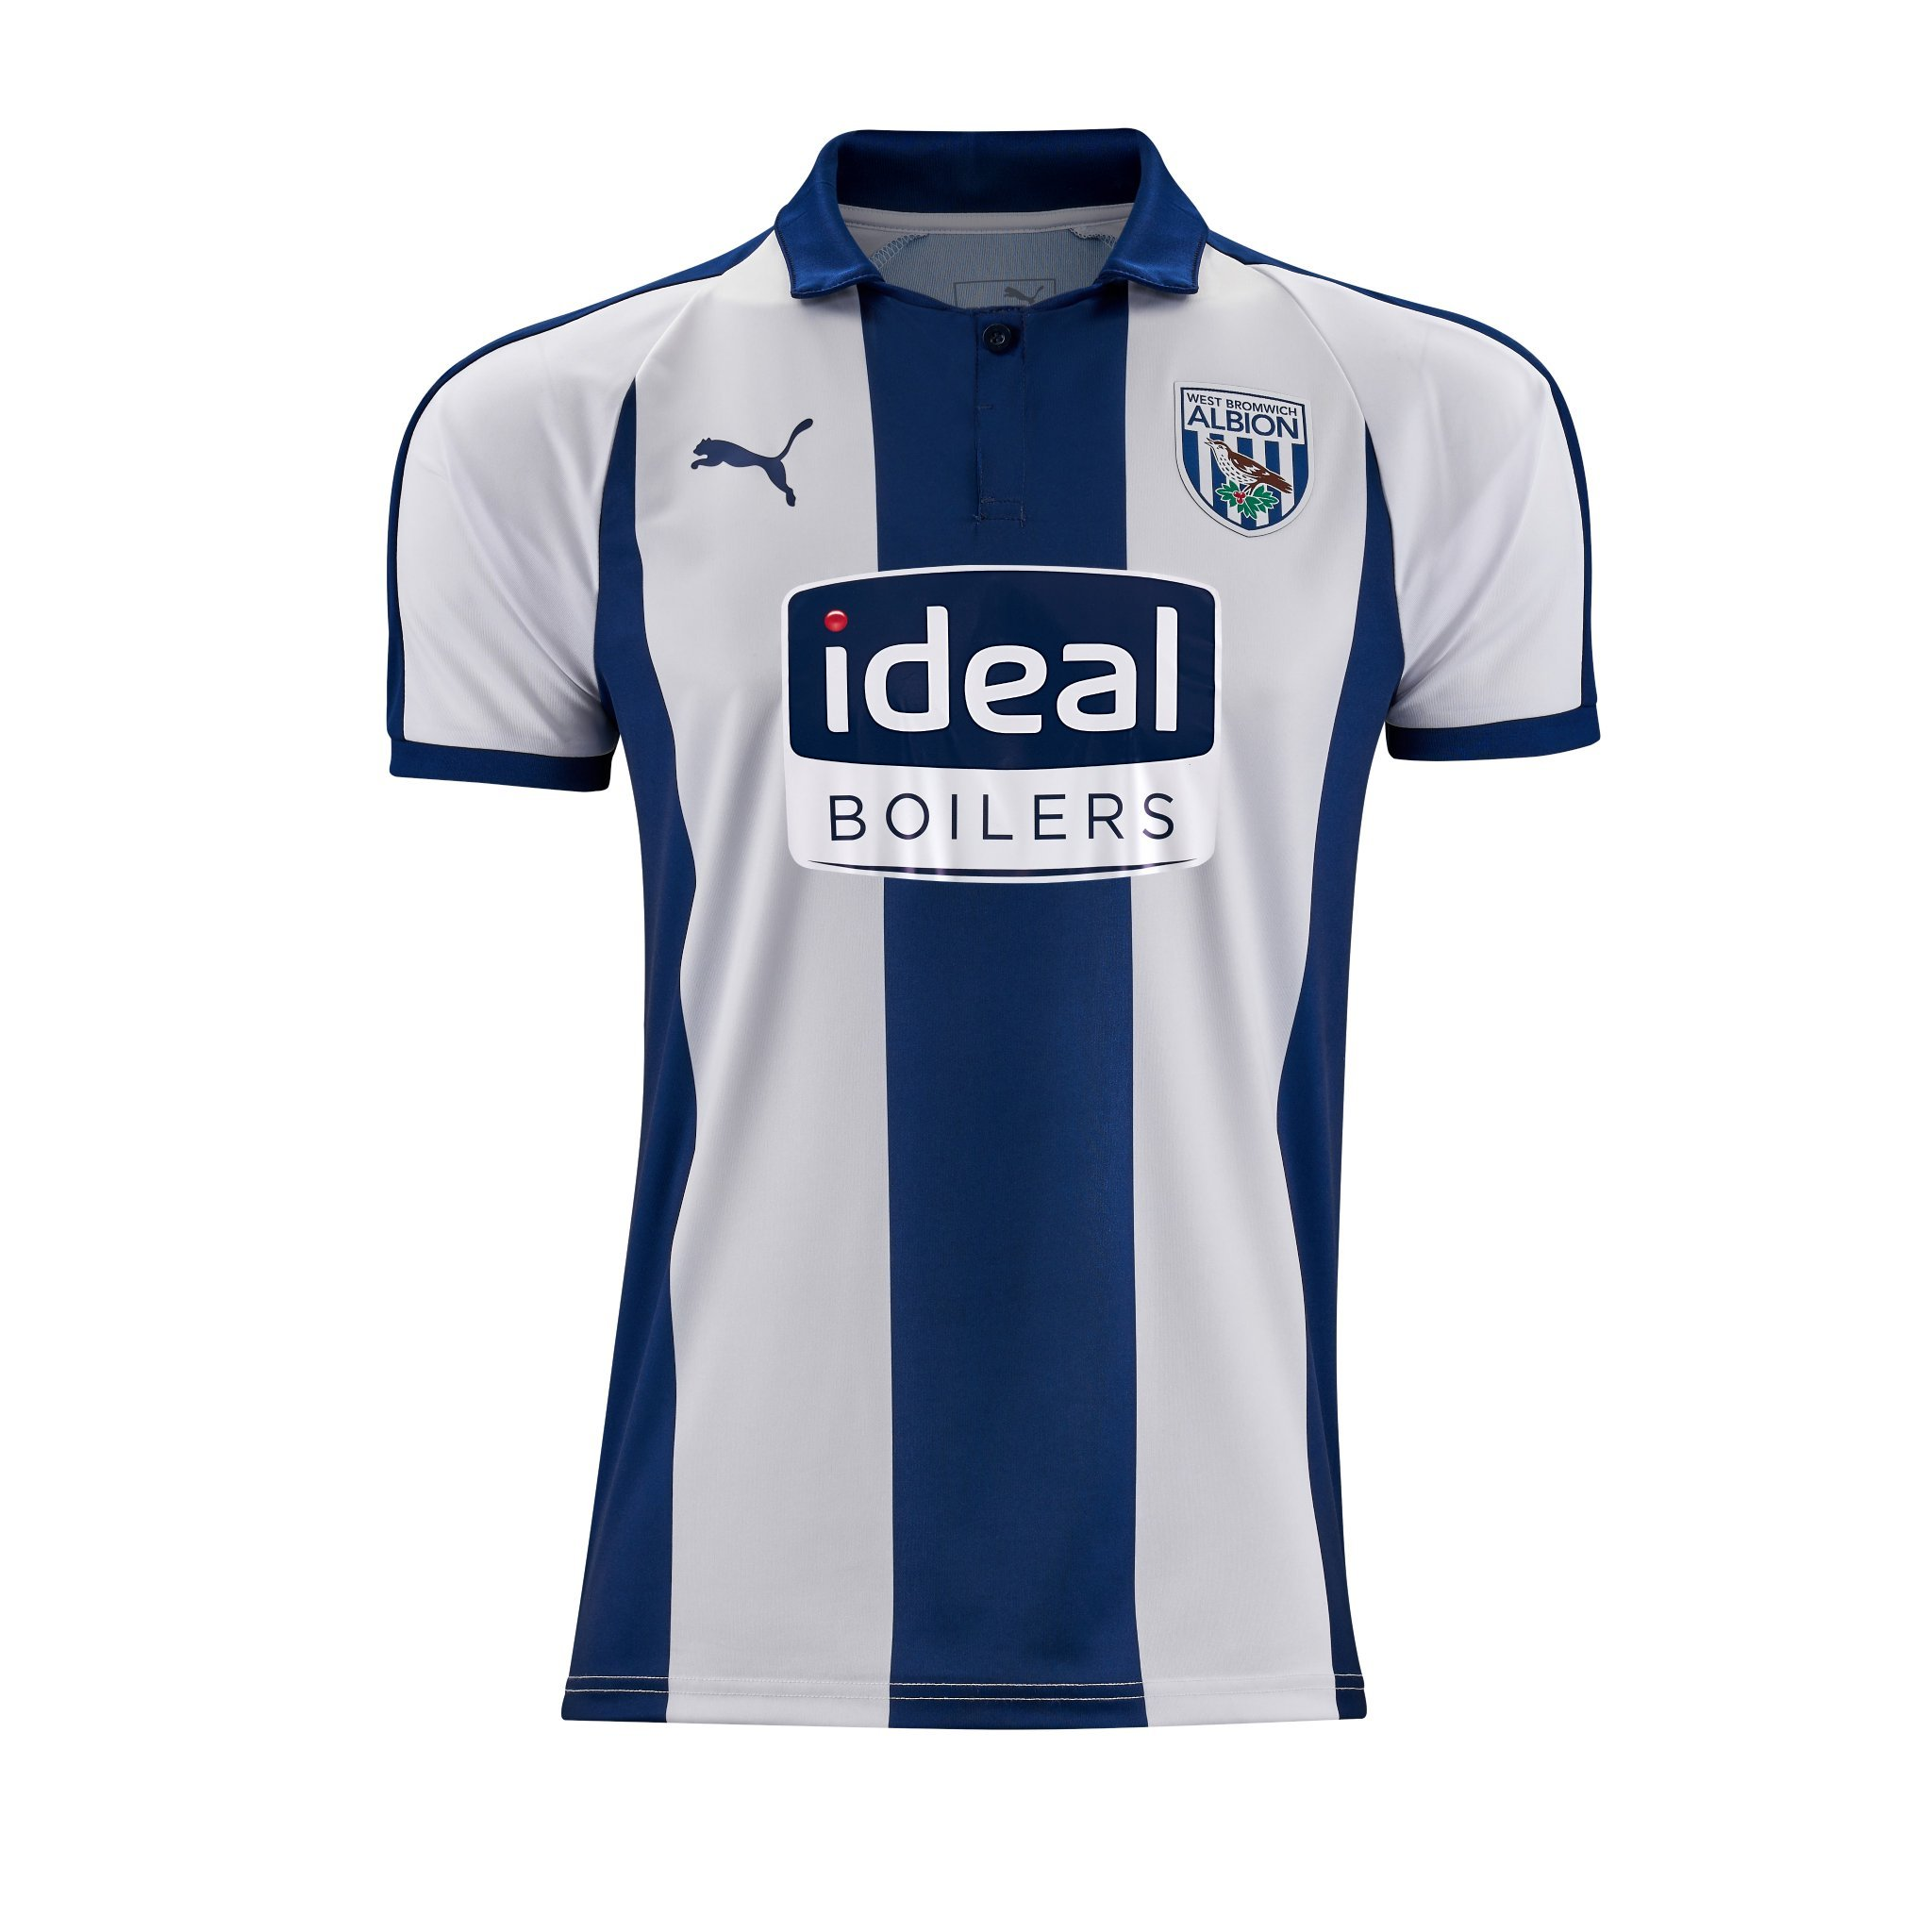 West Brom Release Home Kit For 2018 19 Season Express Star